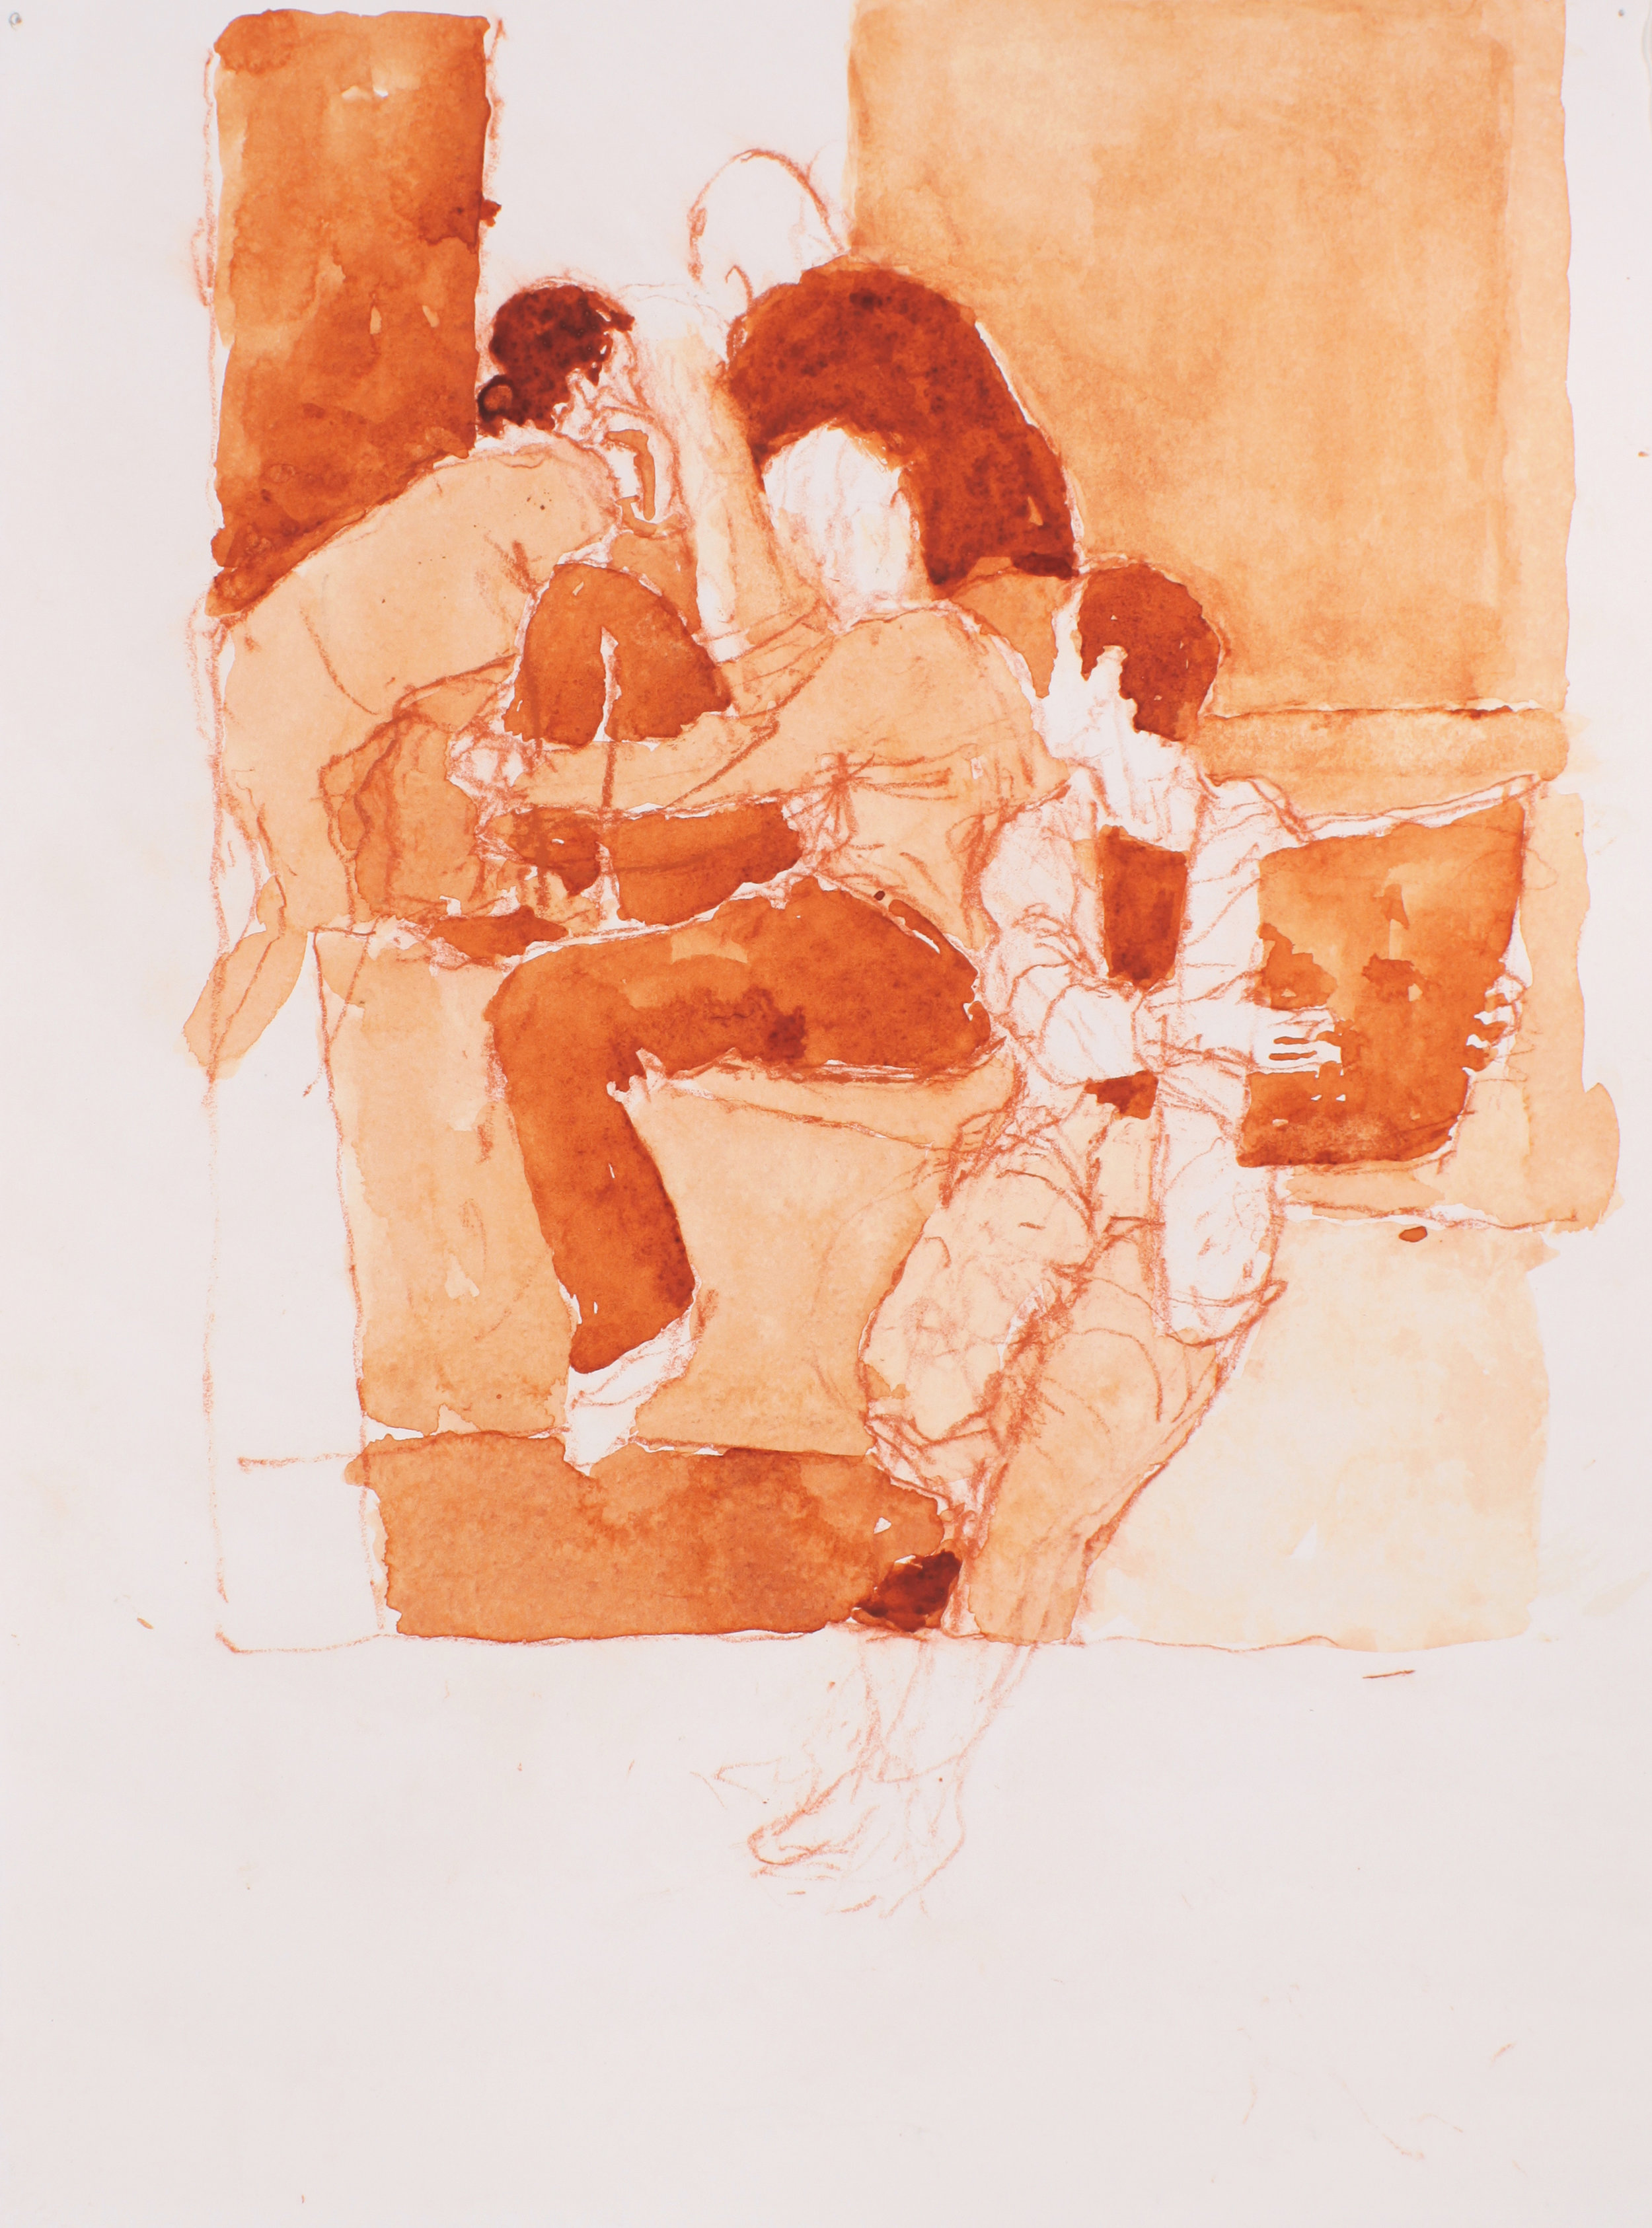 2002_Group_of_Four_Seated_Figures_watercolour_and_red_conte_on_paper_15x11in_WPF212.jpg